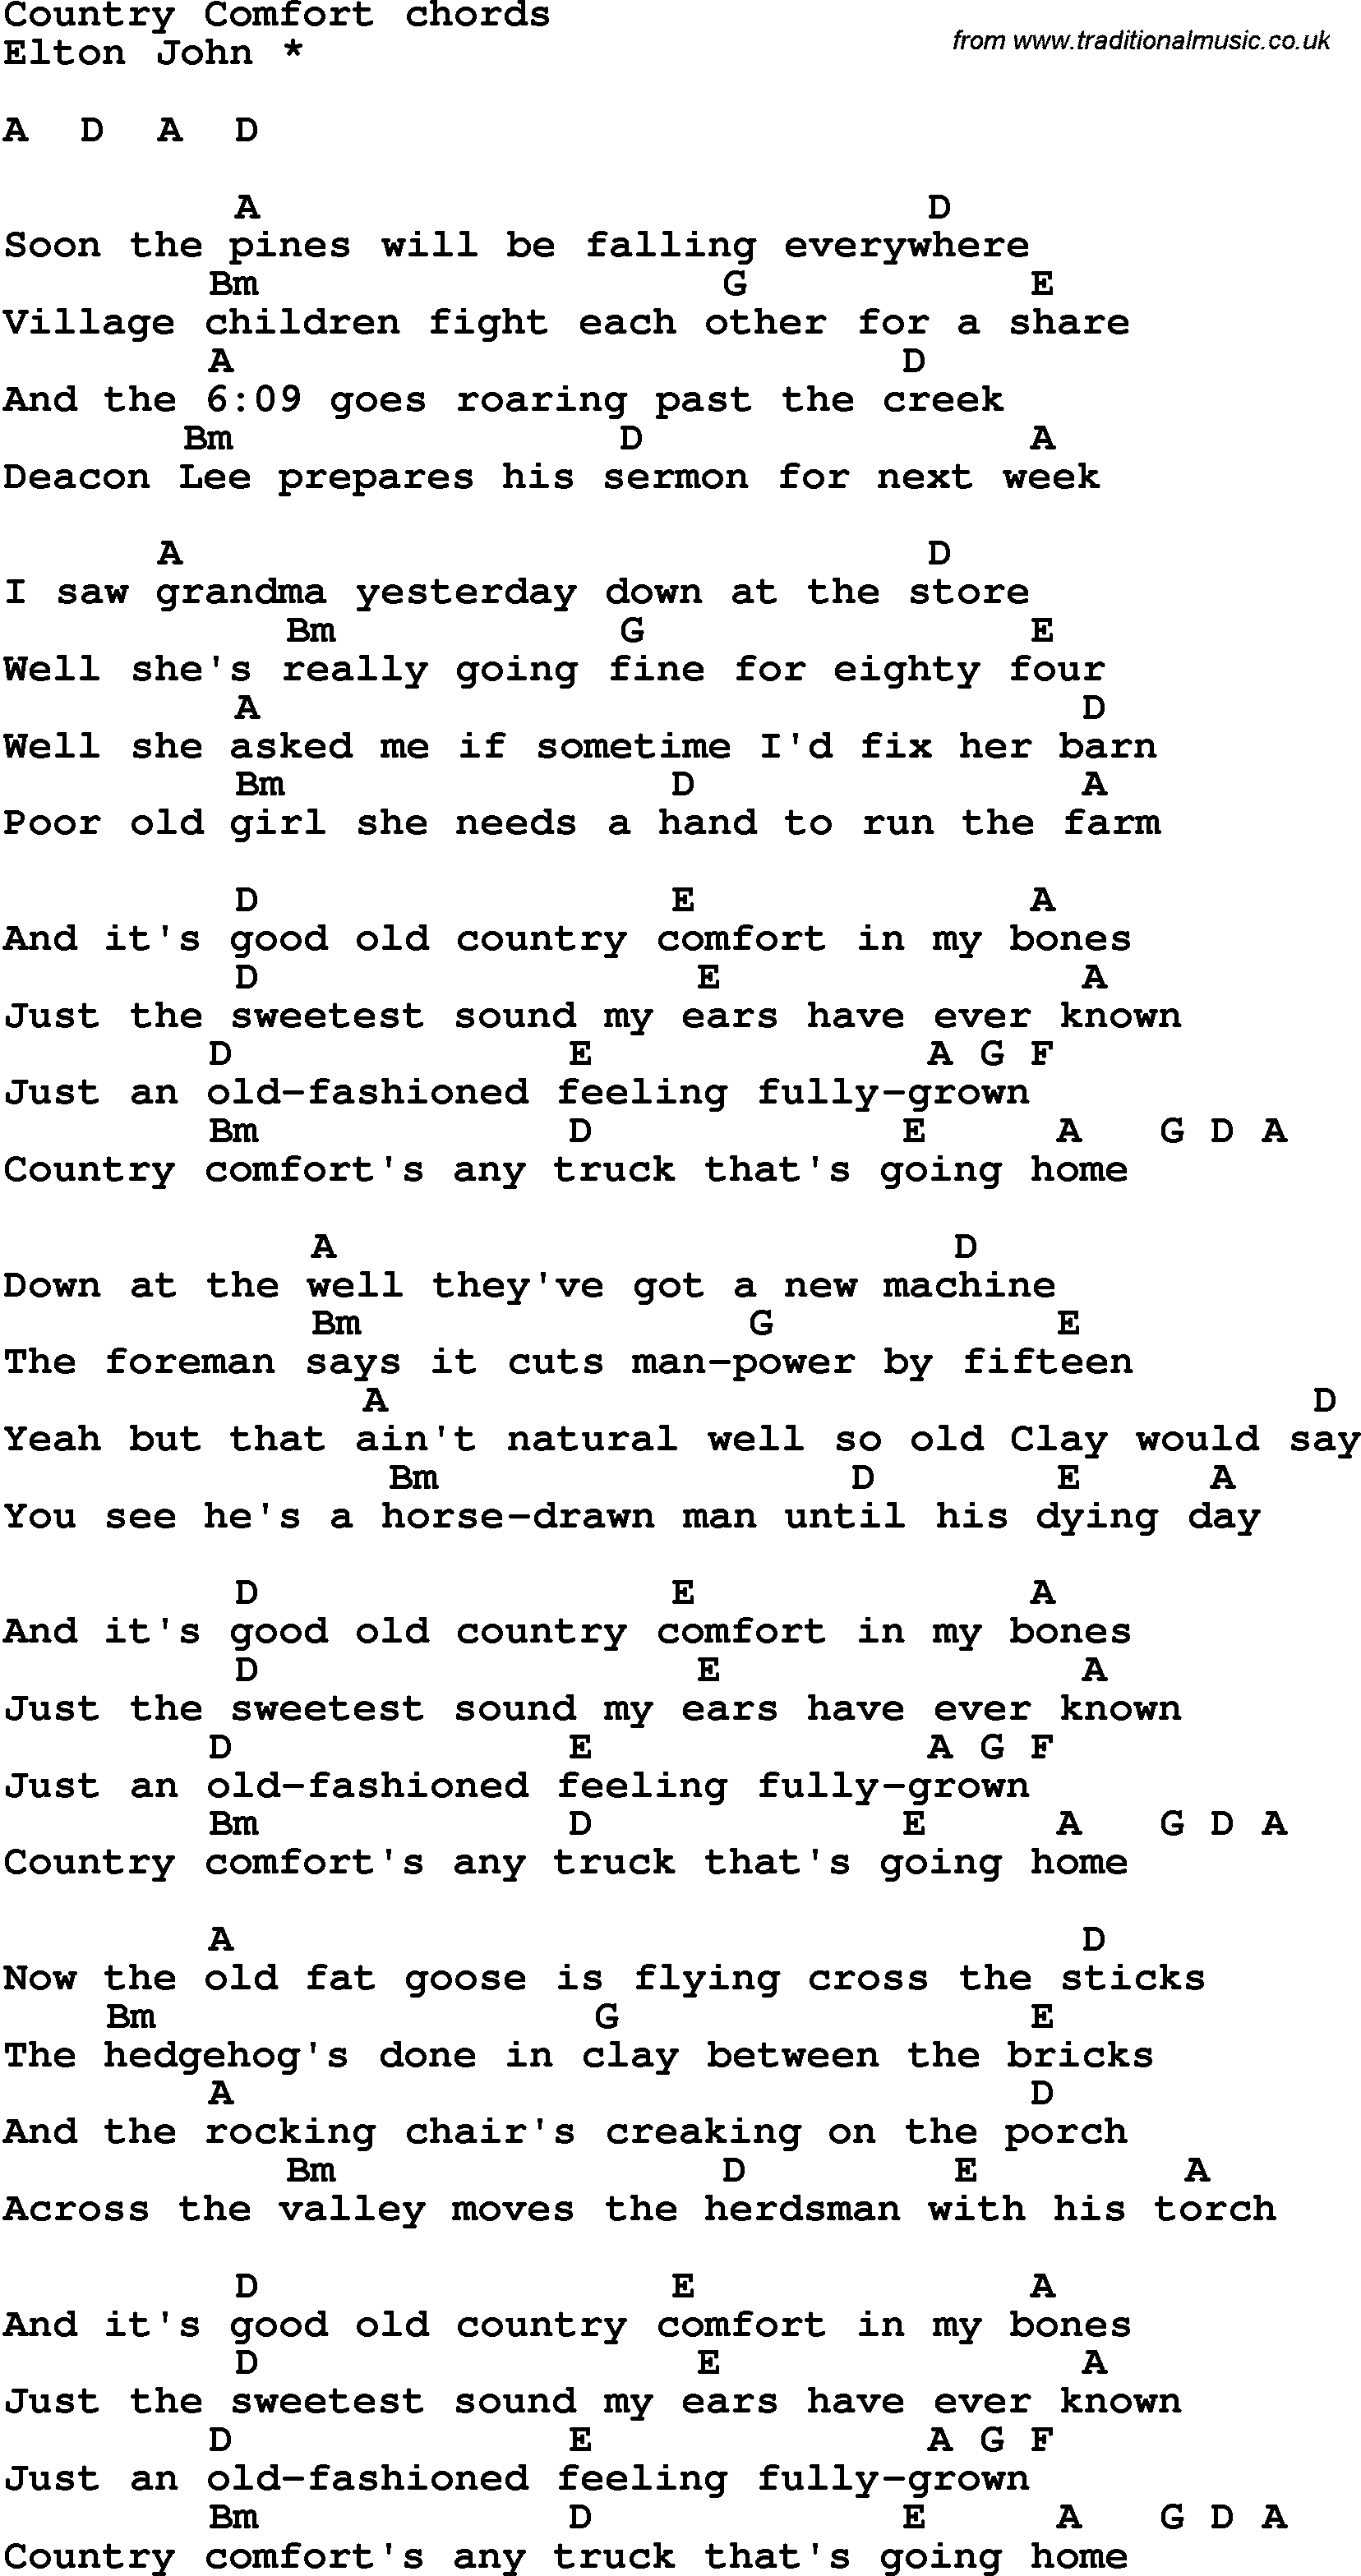 Song lyrics with guitar chords for Country Comfort